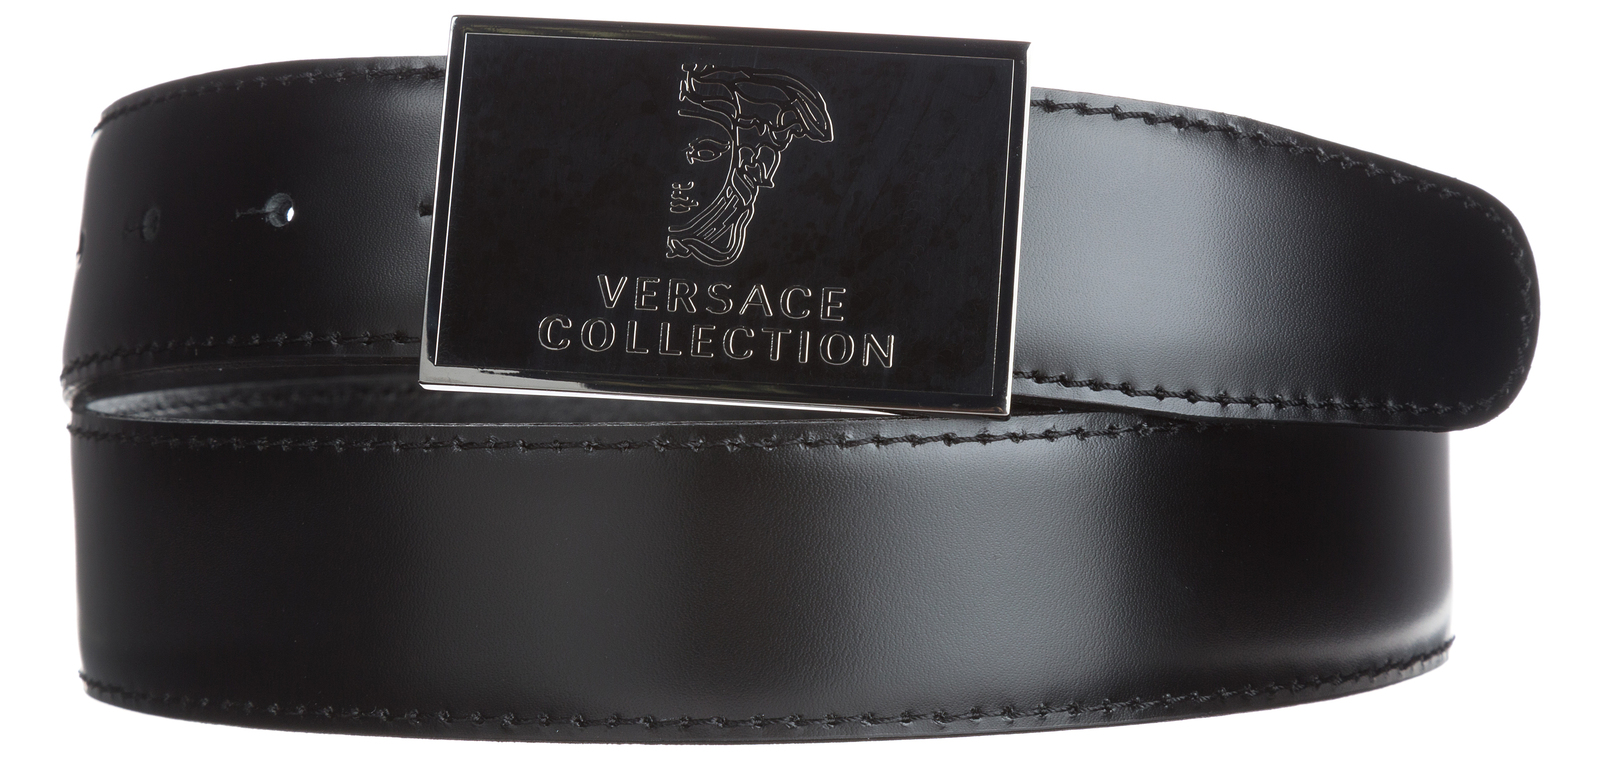 Versace Collection Öv 110 cm, Fekete fotója